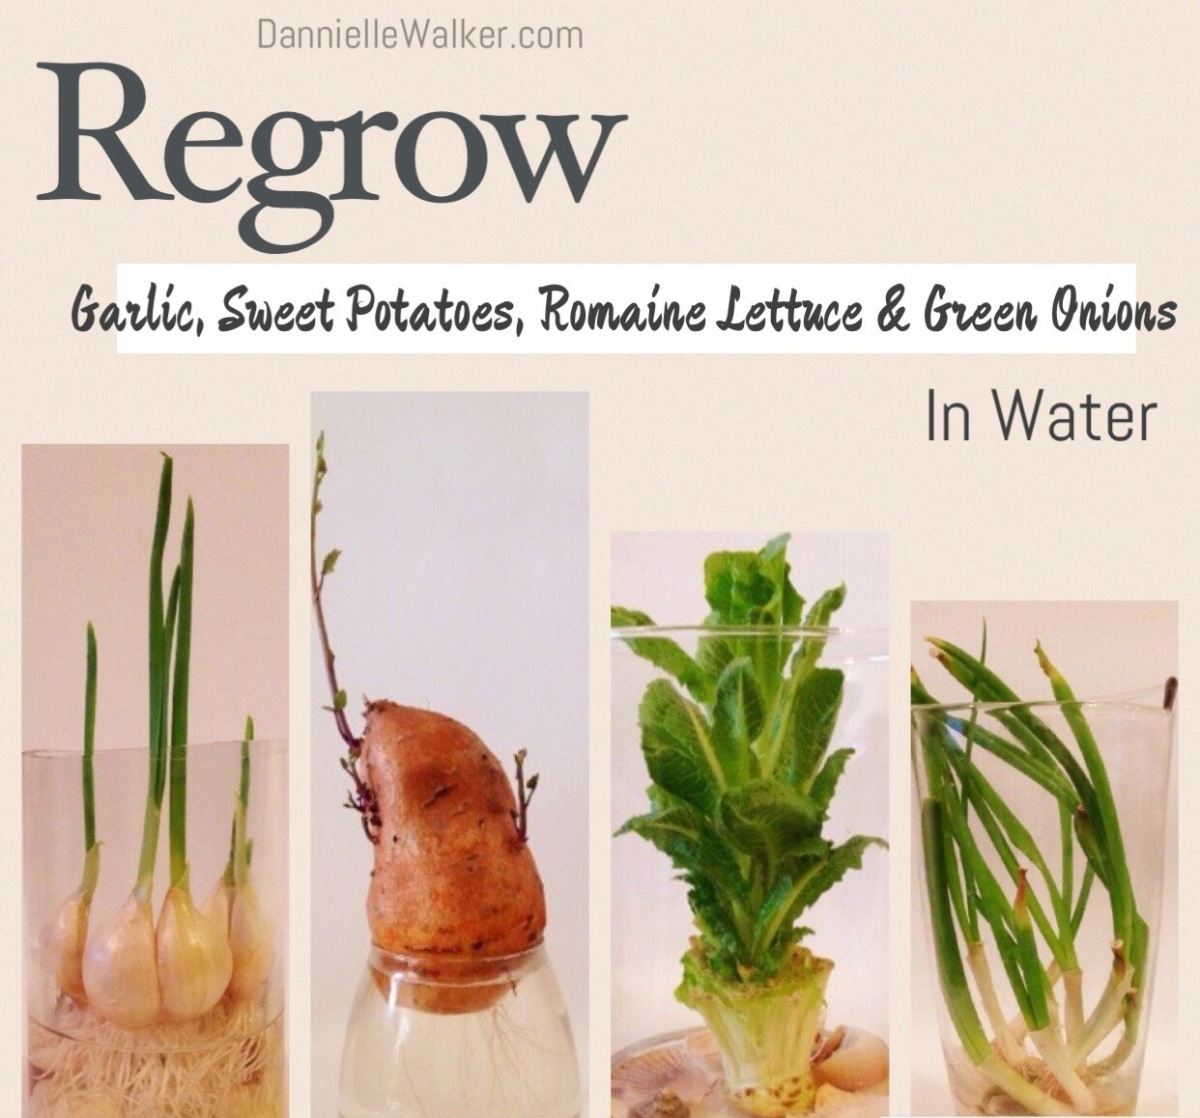 How to Regrow Vegatables in Water